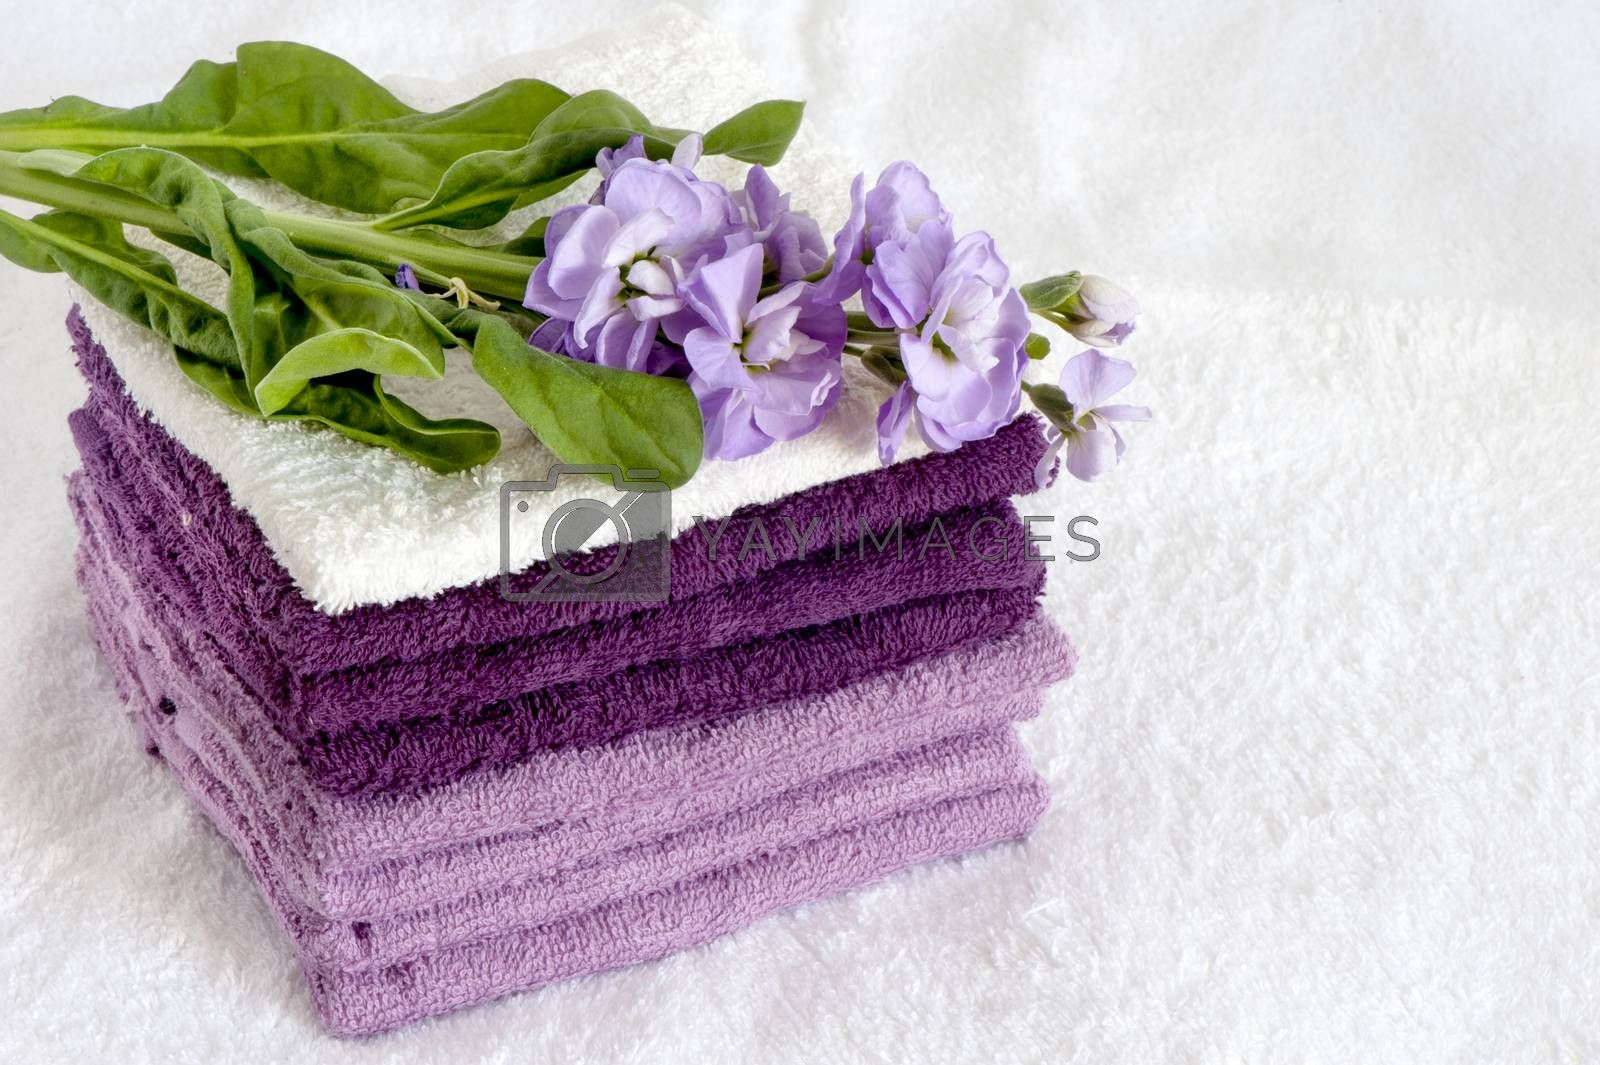 a terry towels on  a white background